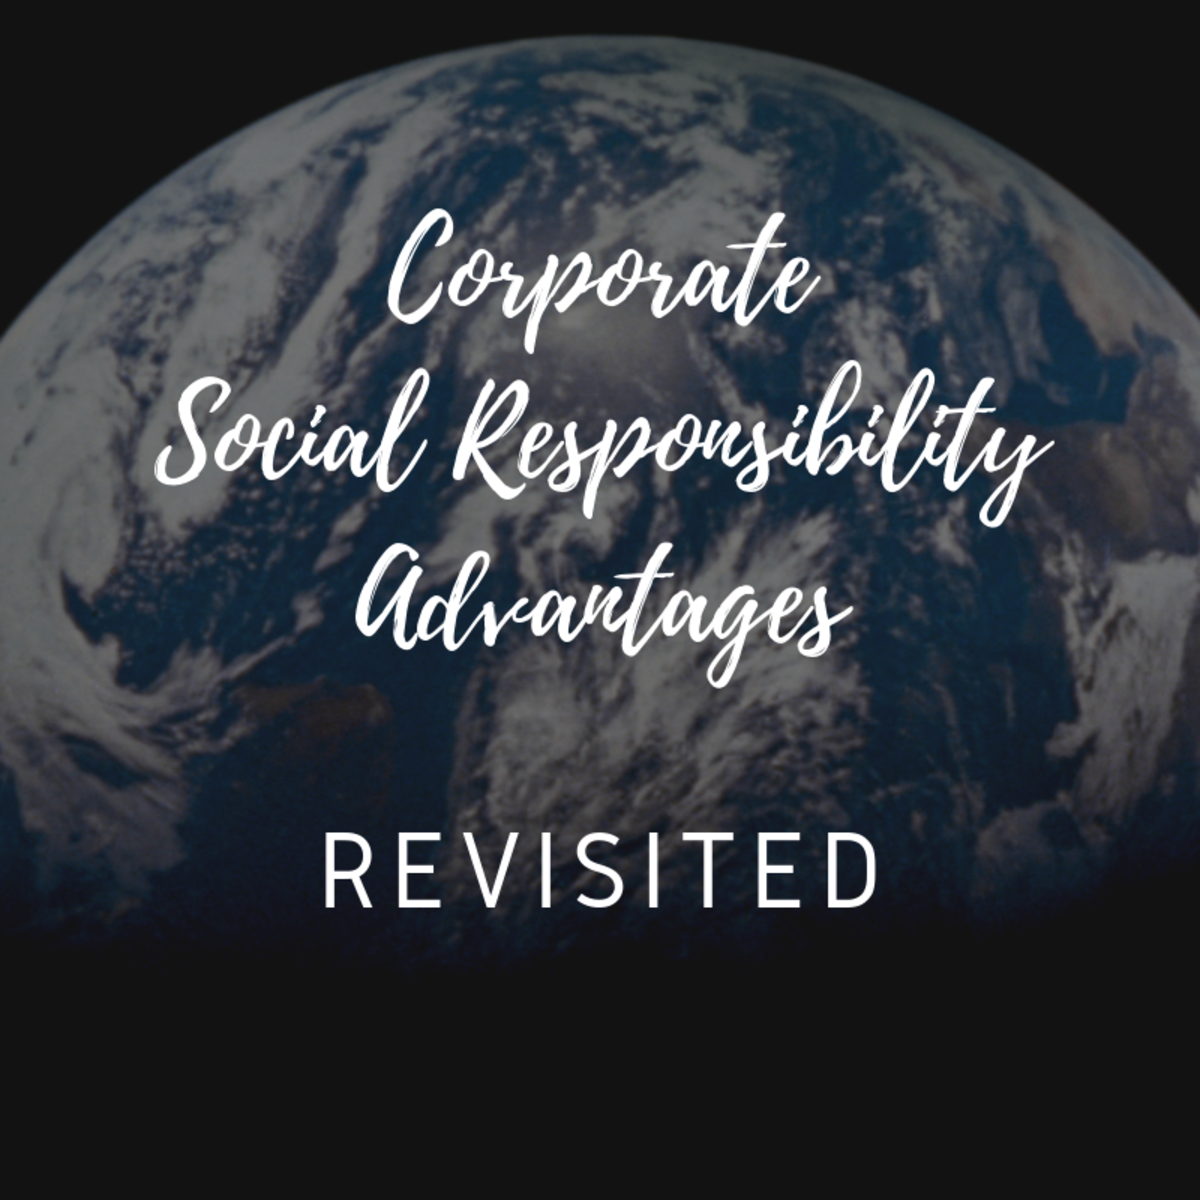 Advantages of Corporate Social Responsibility: Another Look